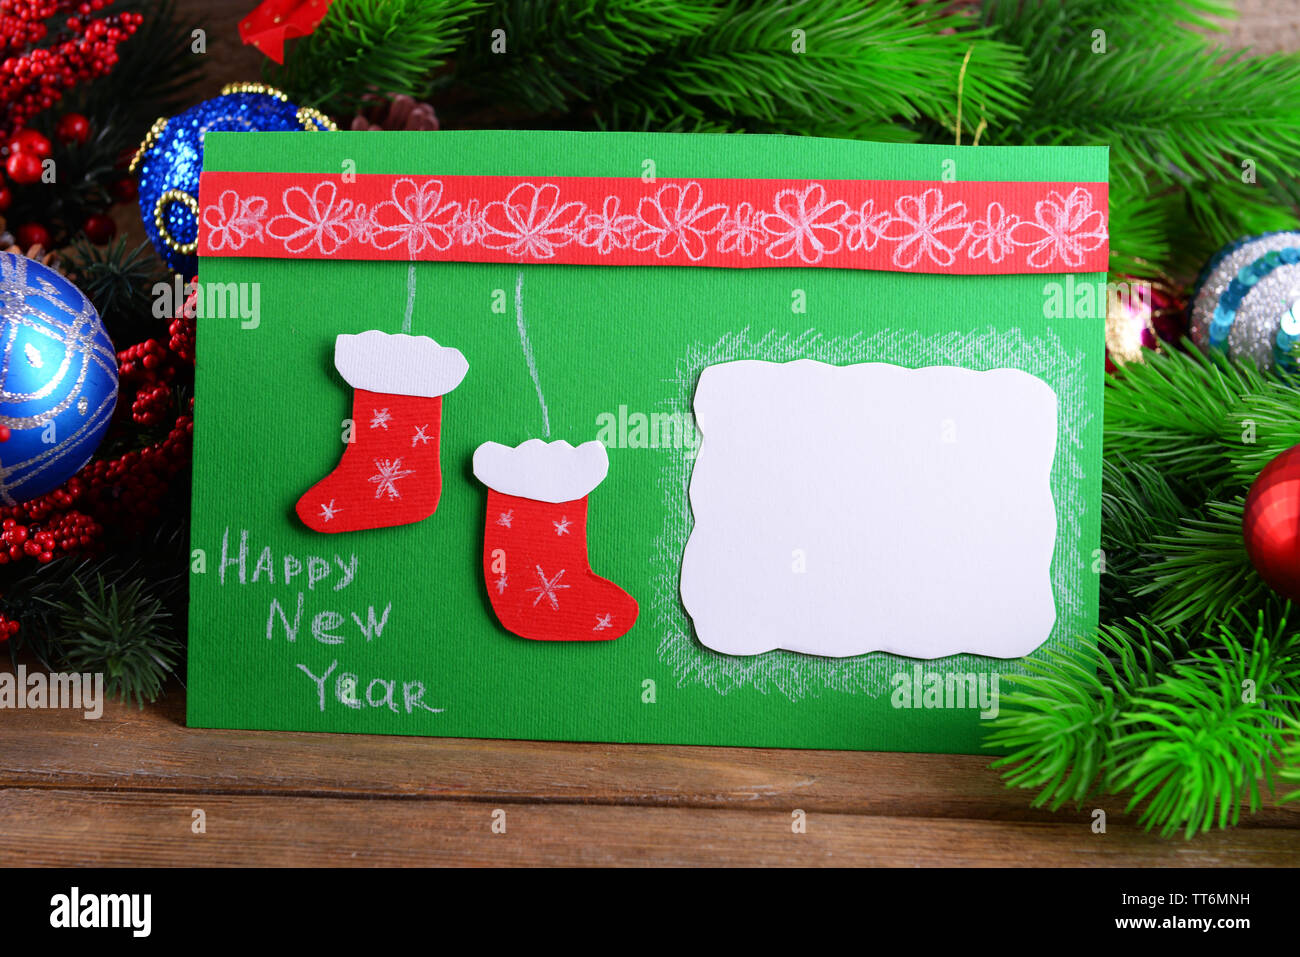 Handmade Christmas Card With Christmas Decorations On Wooden